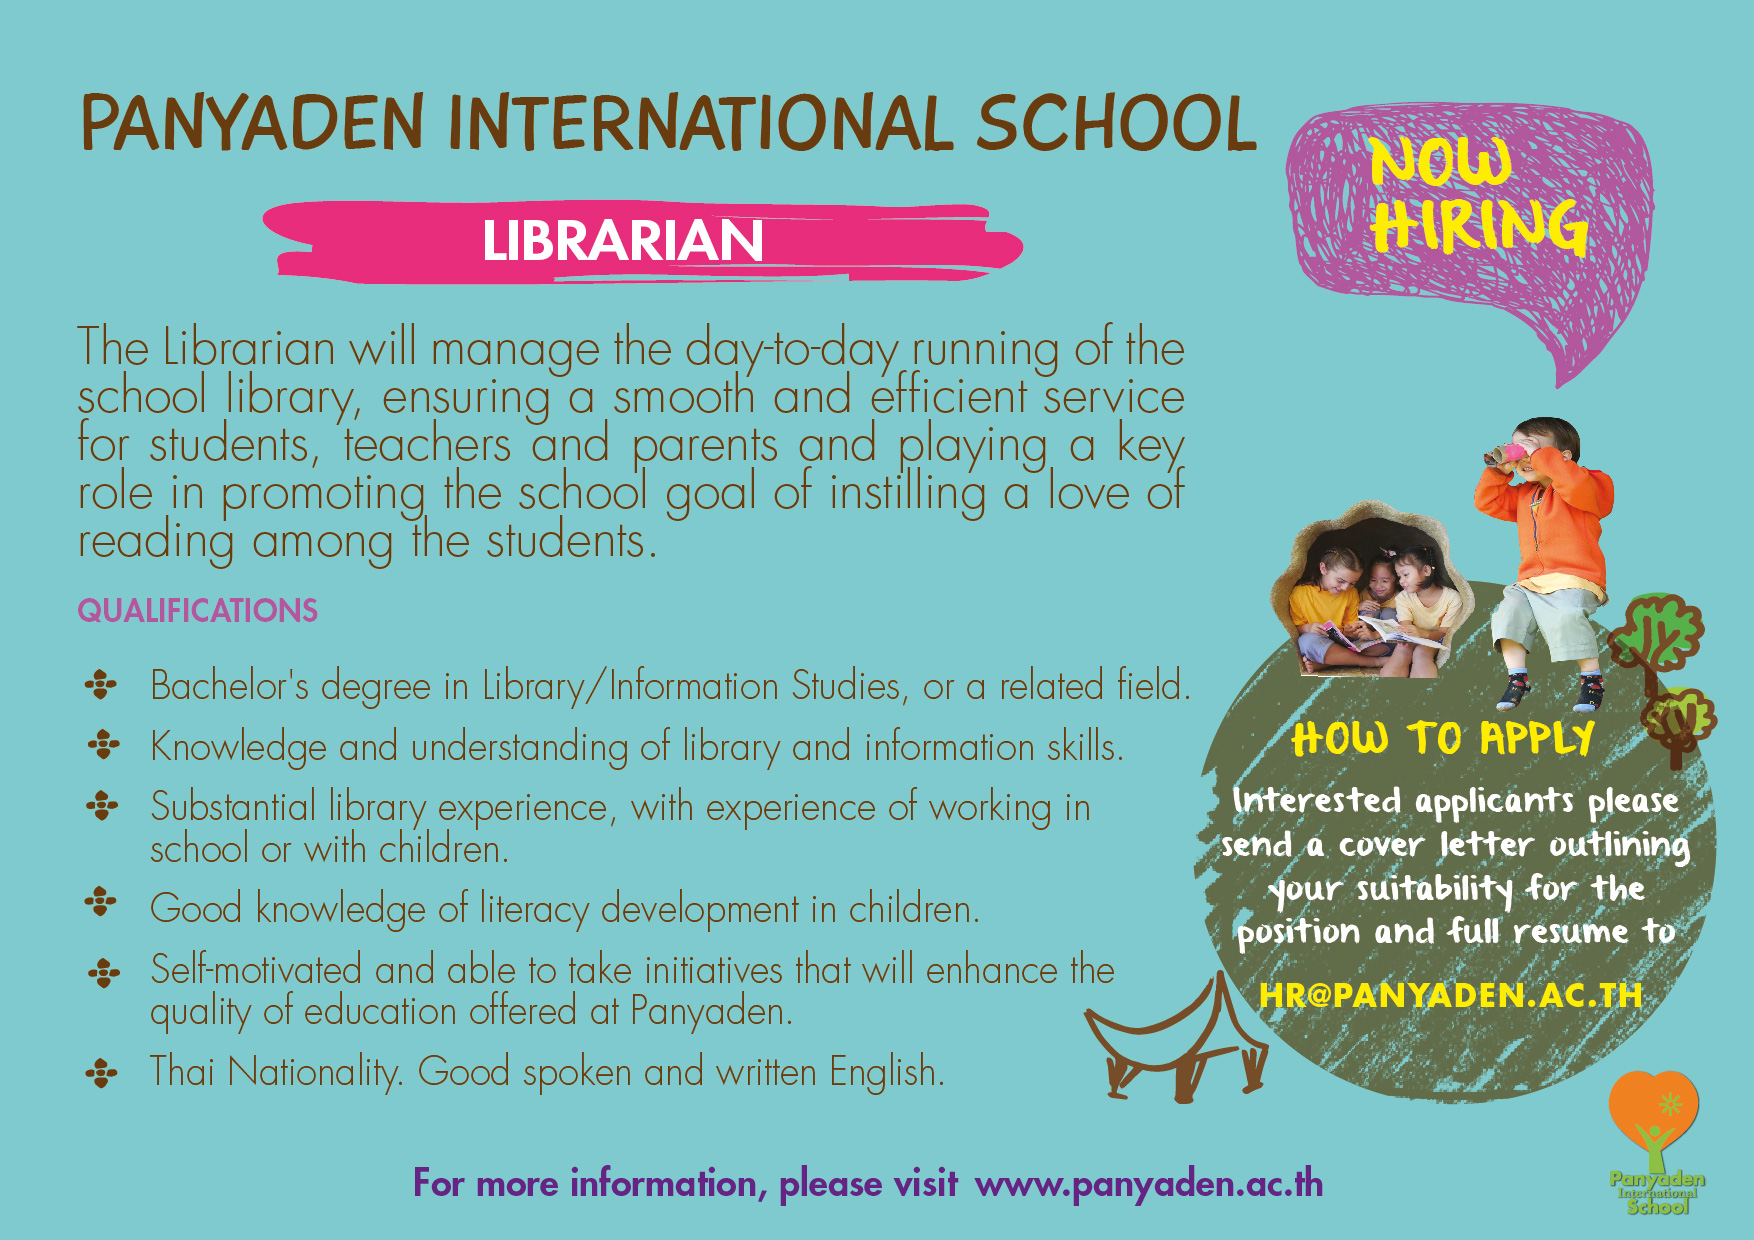 Panyaden International School is hiring a librarian for August 2017 in Chiang Mai